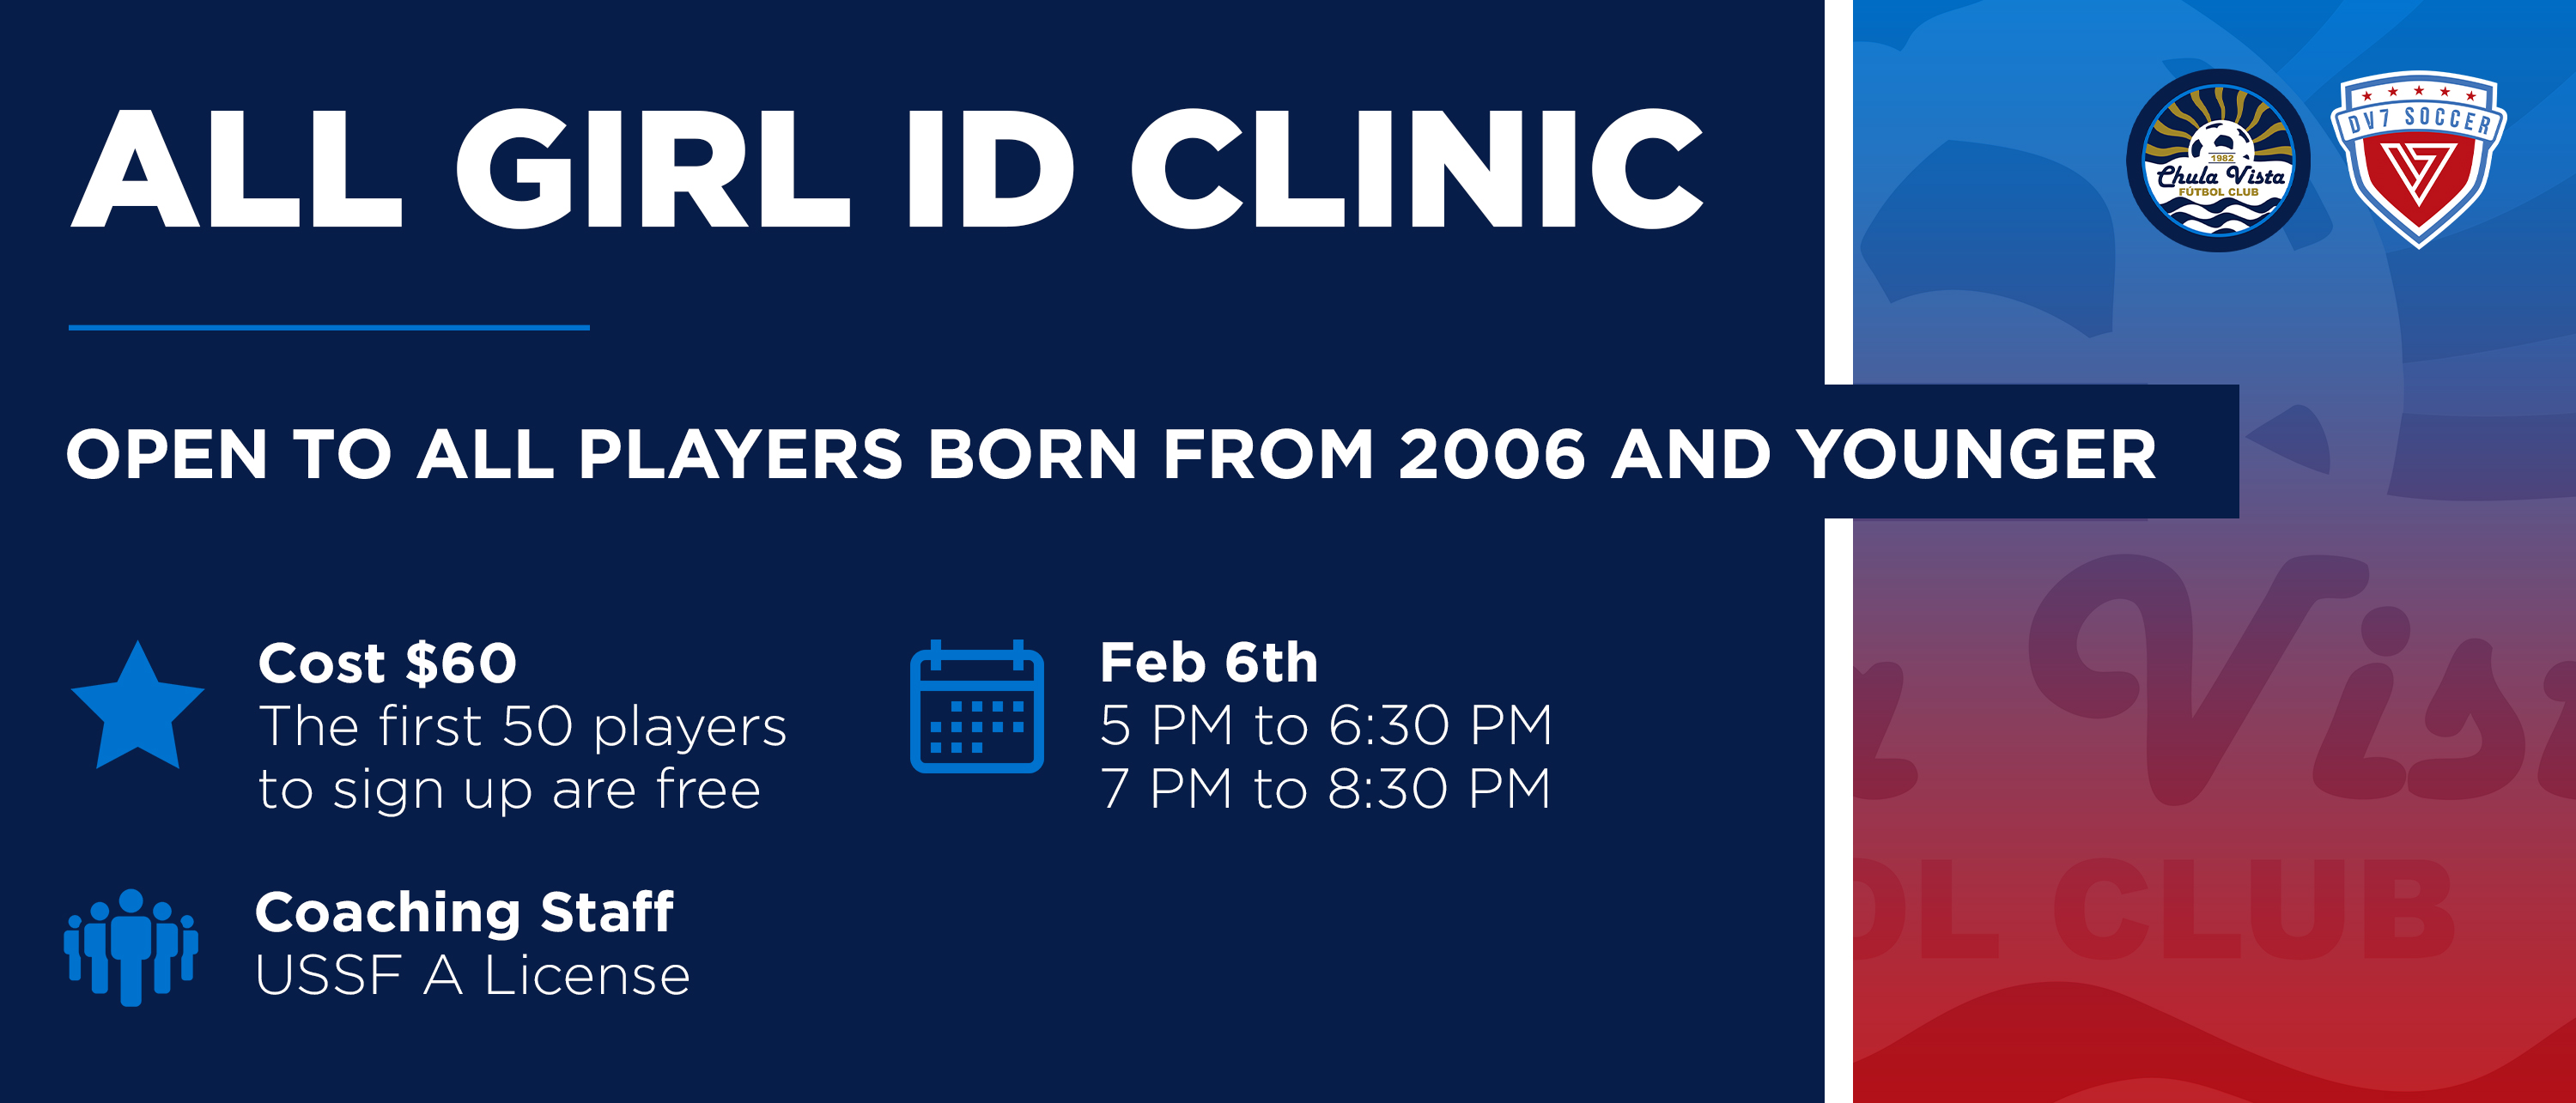 All Girl ID Clinic